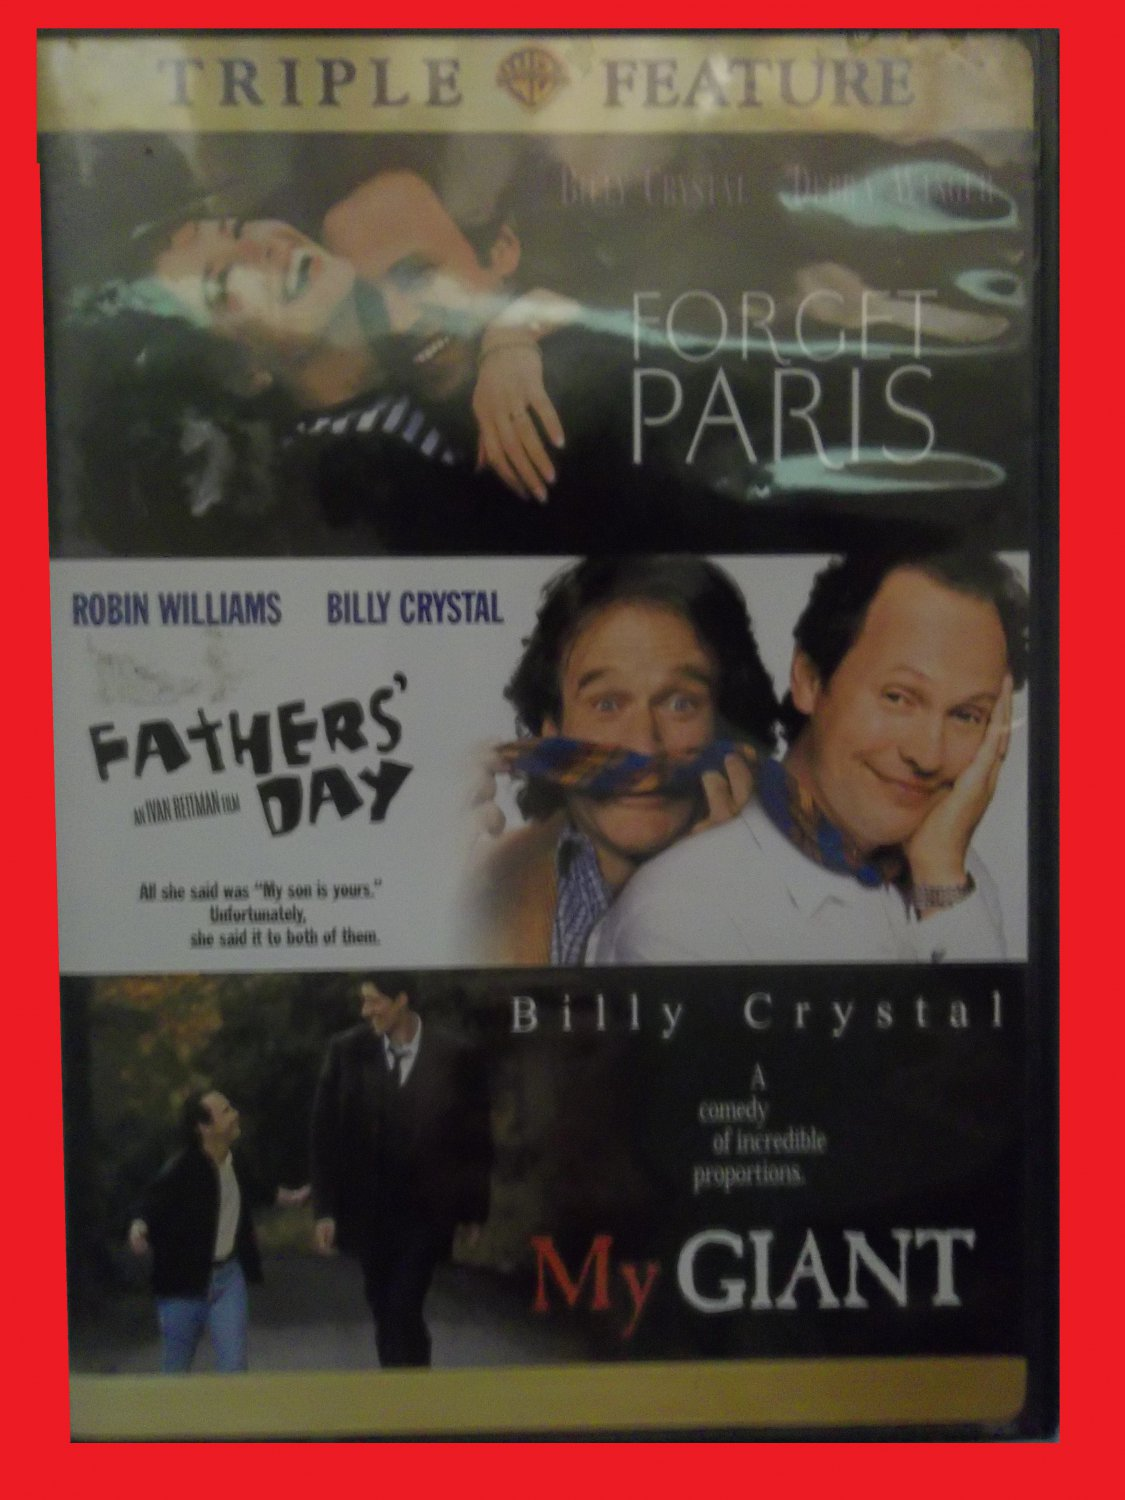 FORGET PARIS, FATHERS' DAY, MY GIANT (FREE DVD & FAST SHIPPING) BILLY CRYSTAL